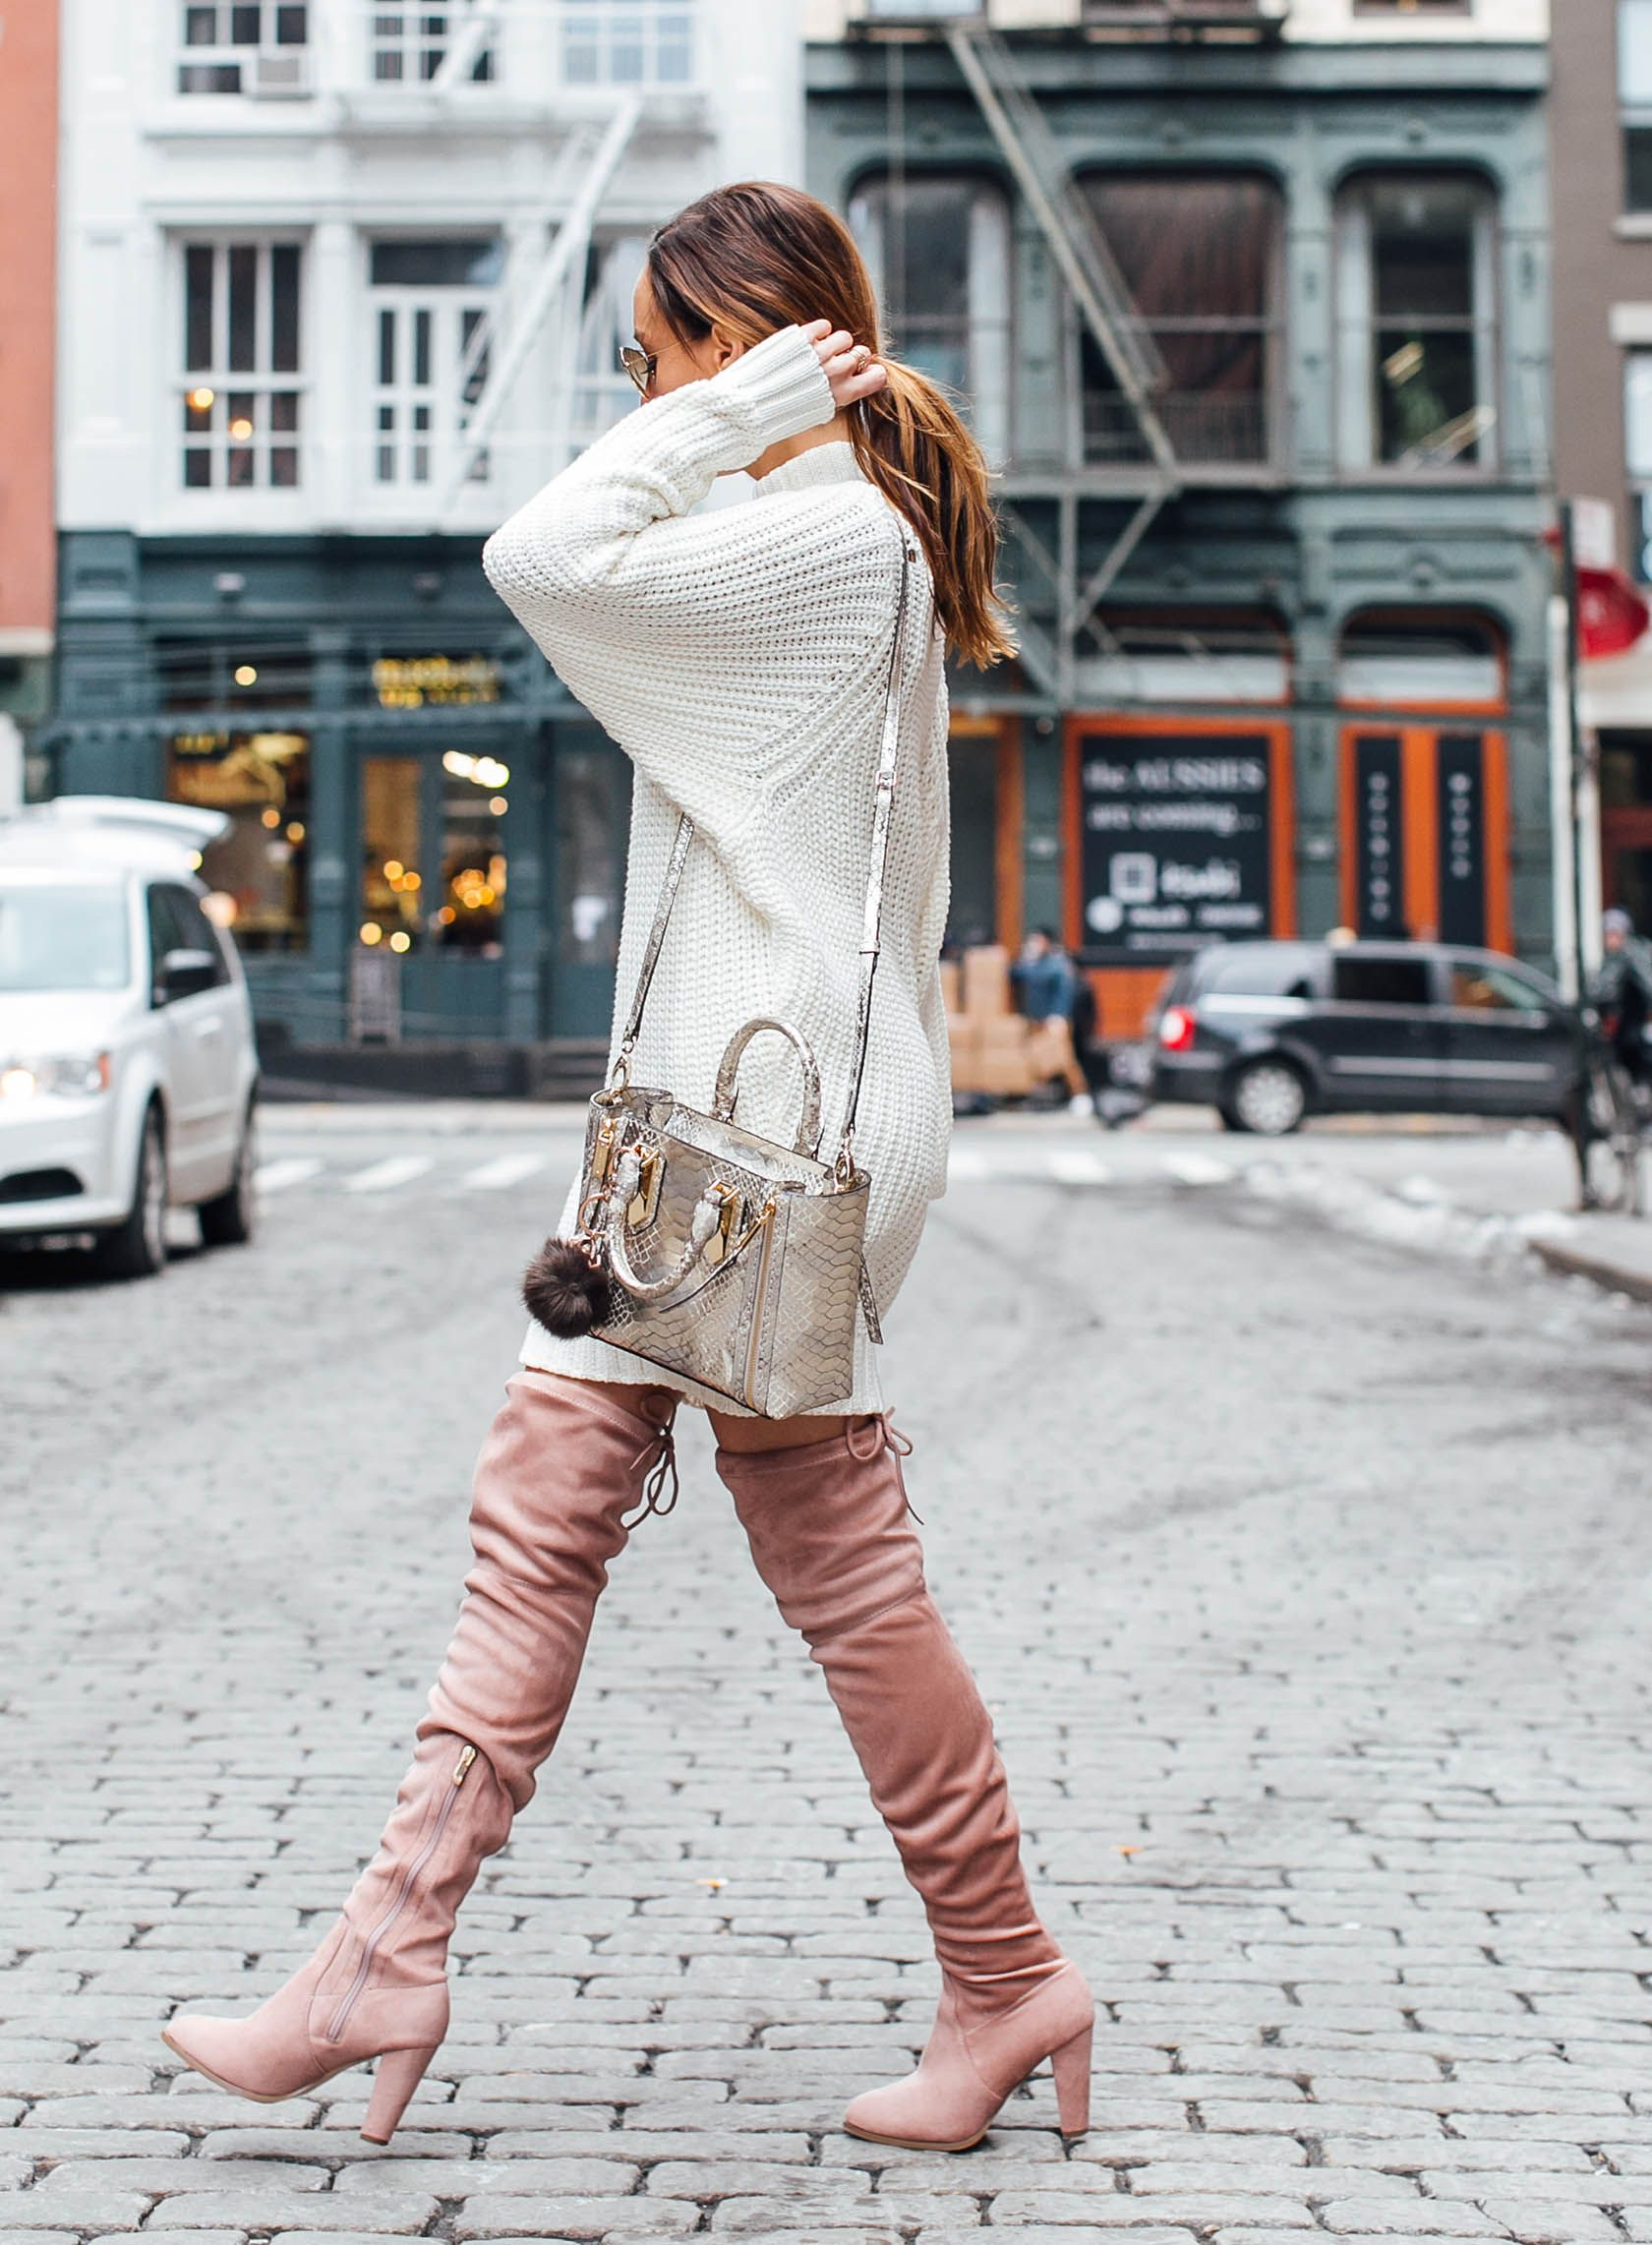 How To Dress Like a Supermodel Off-Duty in 3 Easy Steps - Sydne Style 1ba1a555bf